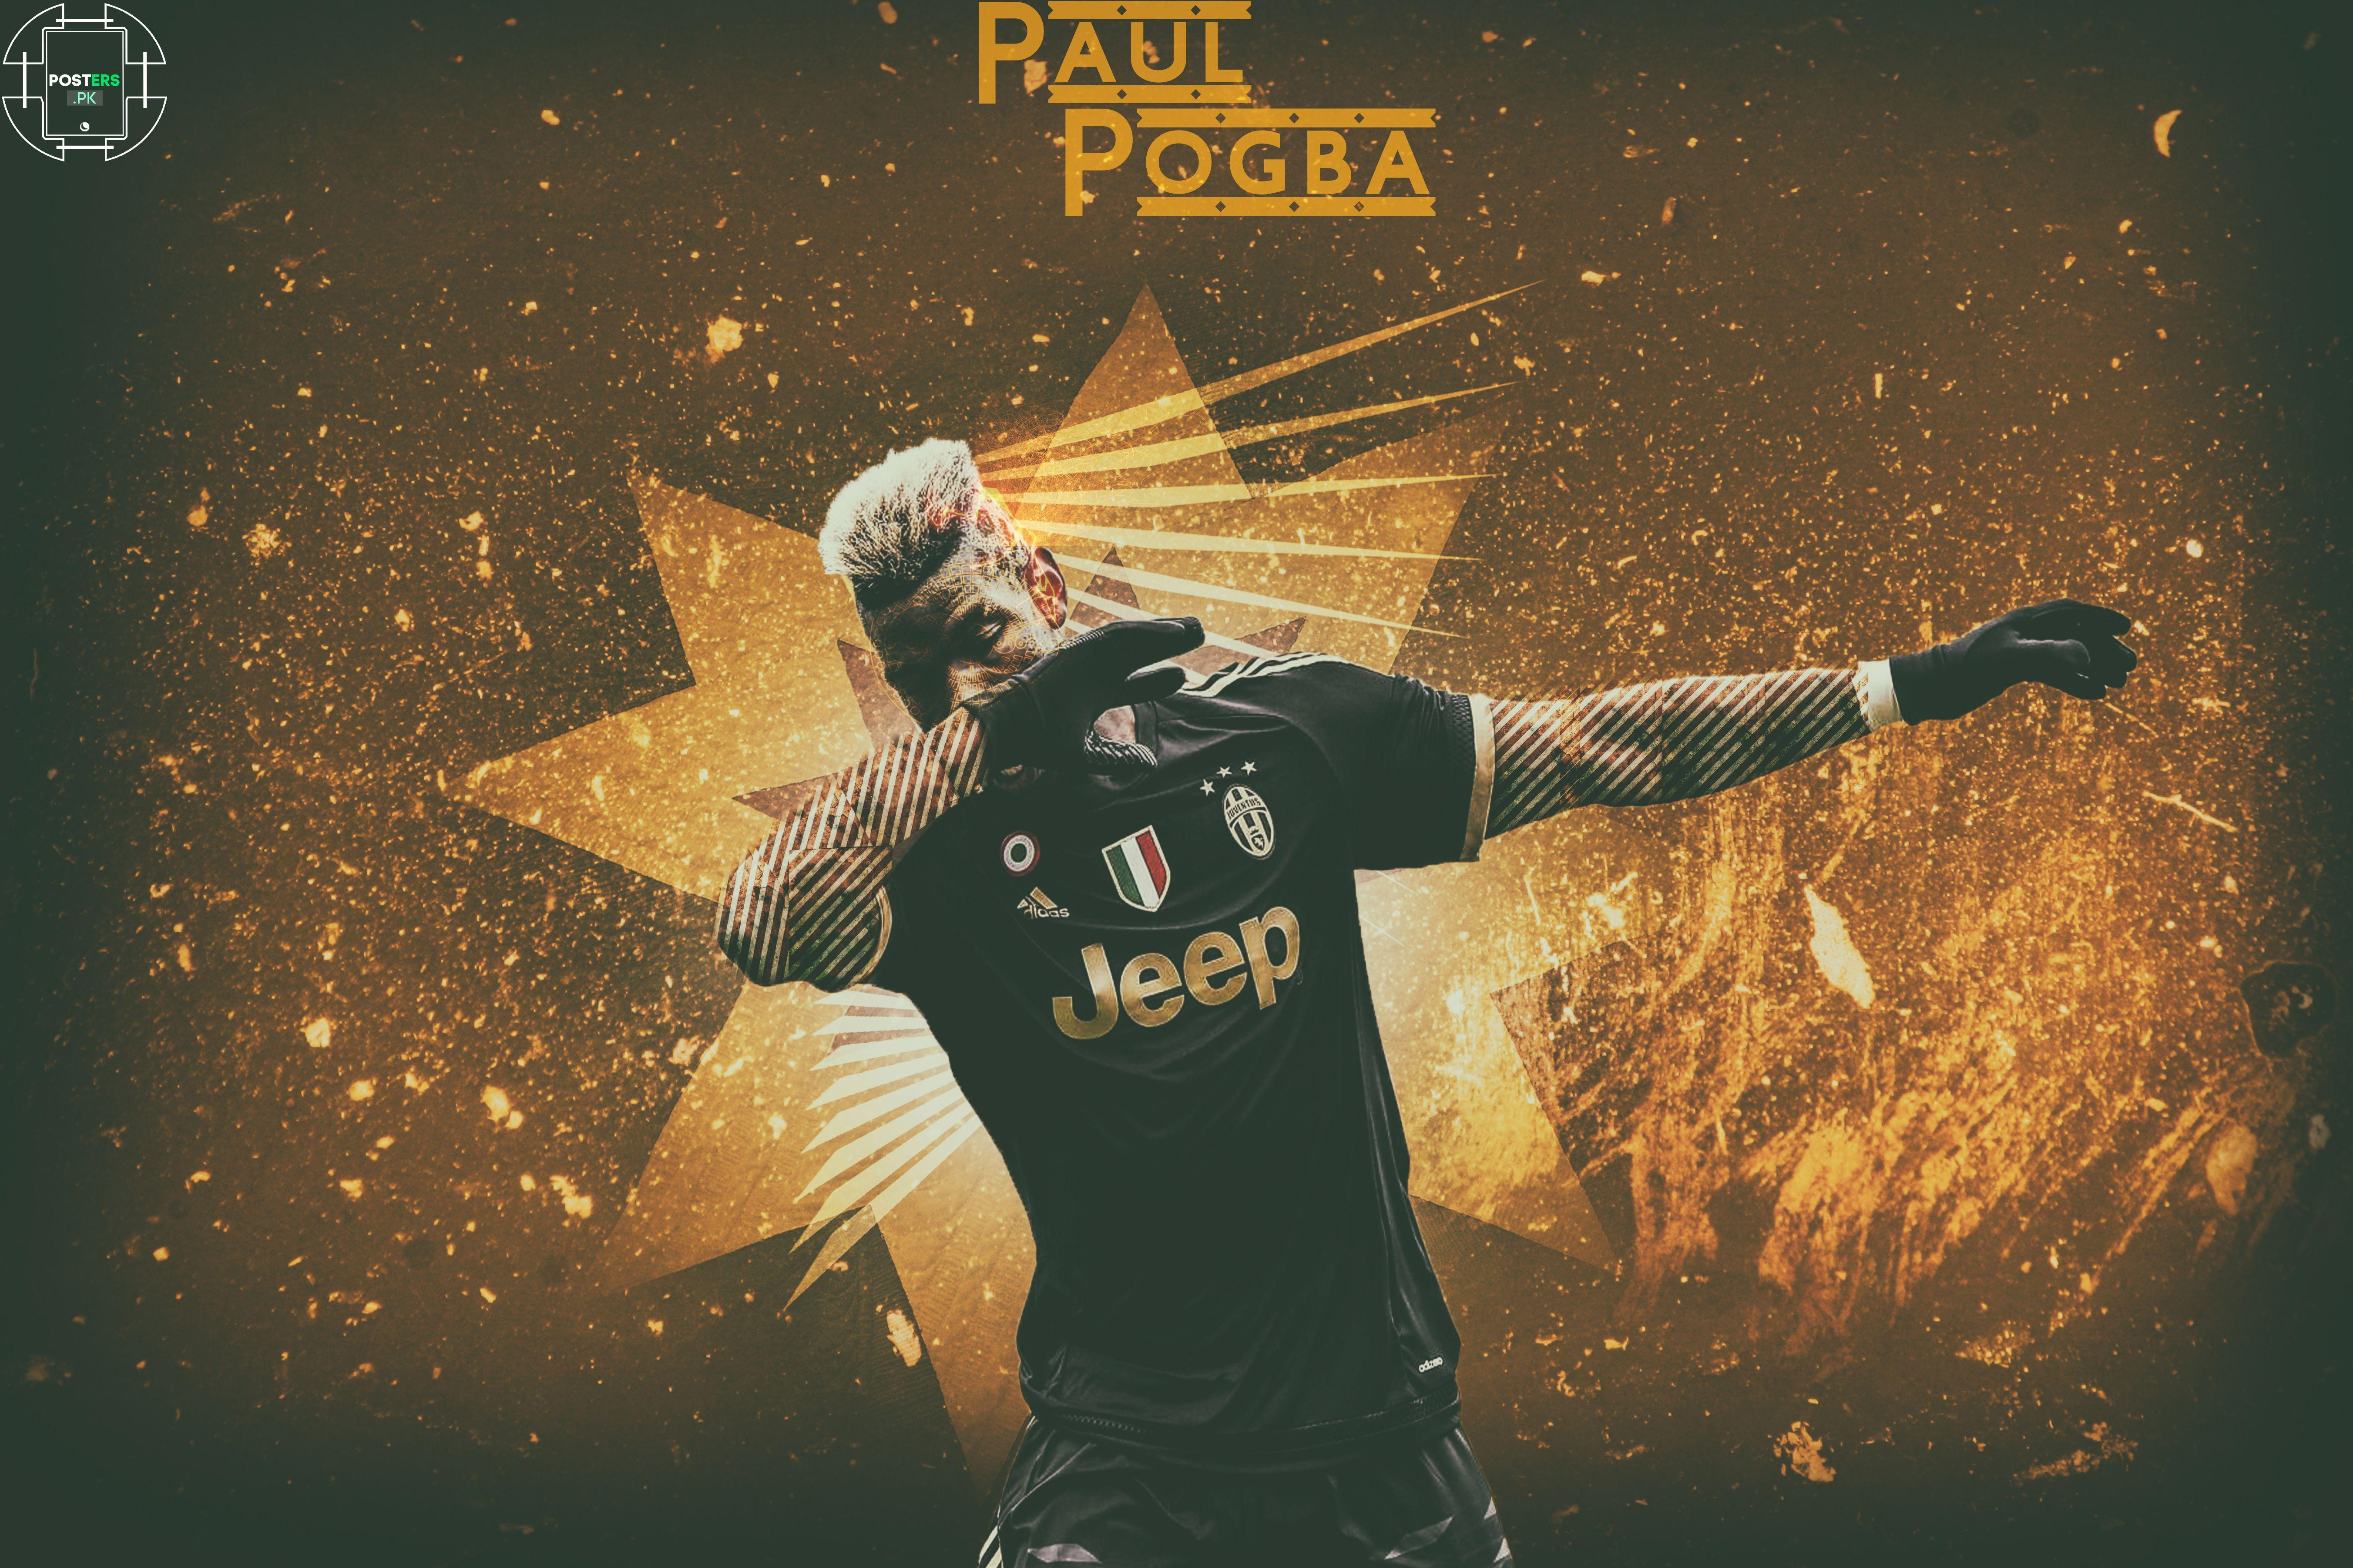 Pogba Dab Wallpapers